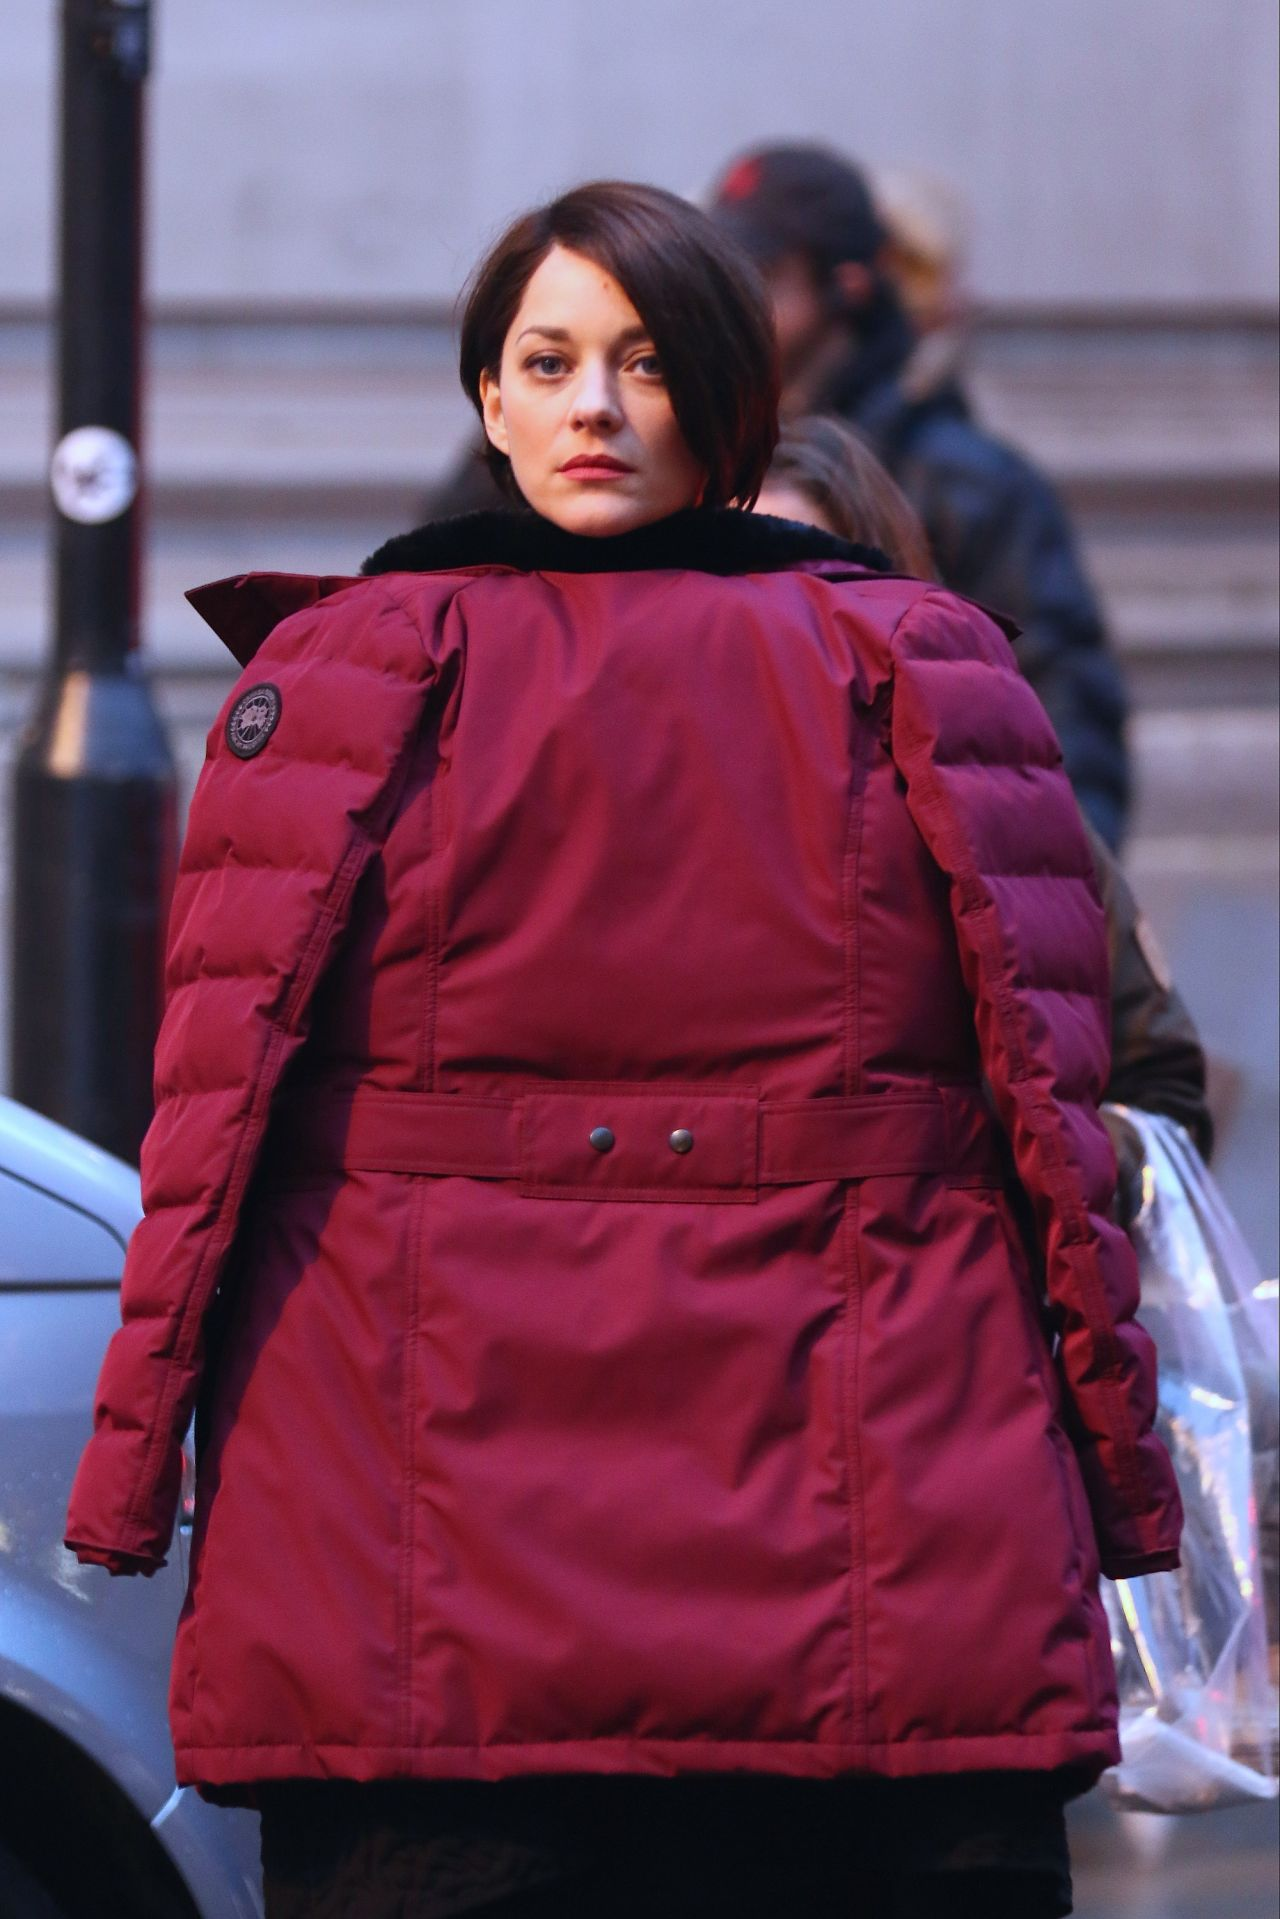 Marion Cotillard On The Set Of Assassin S Creed In